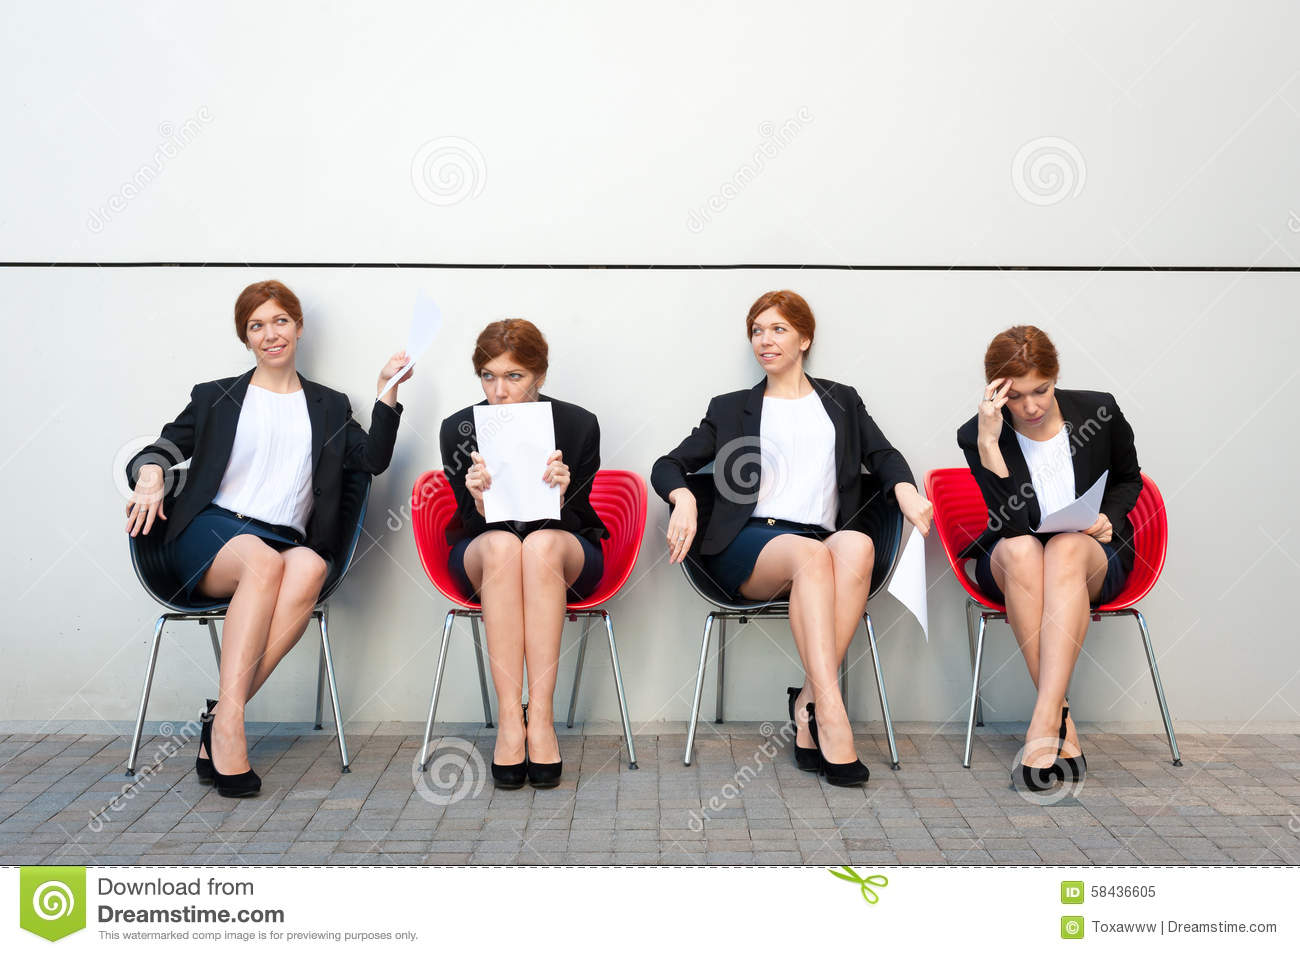 Business woman waiting for interview.